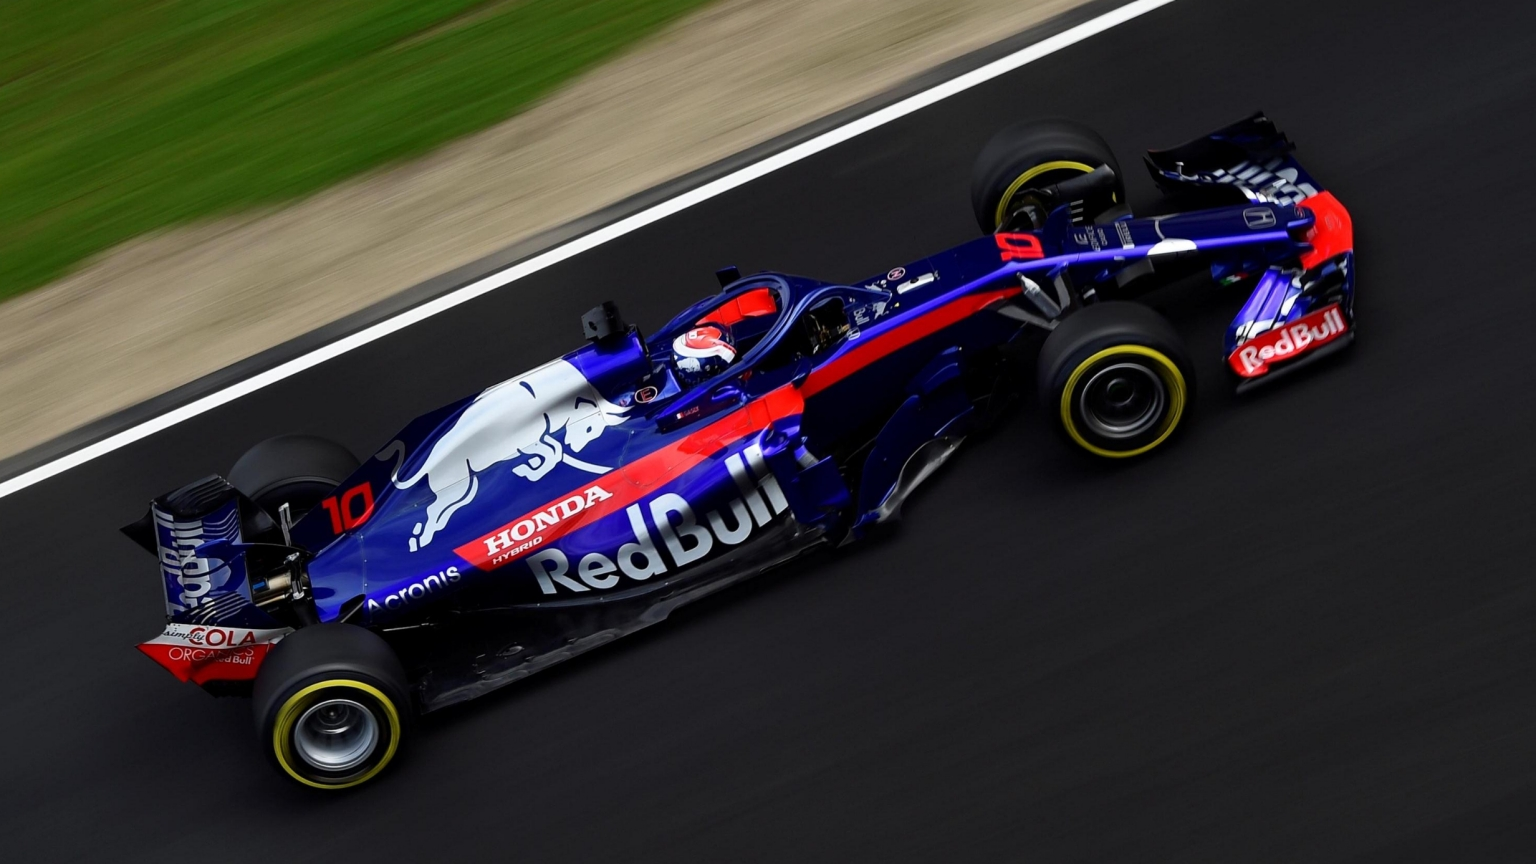 FEATURE How Toro Rosso And Honda Got Off To A Flying Start